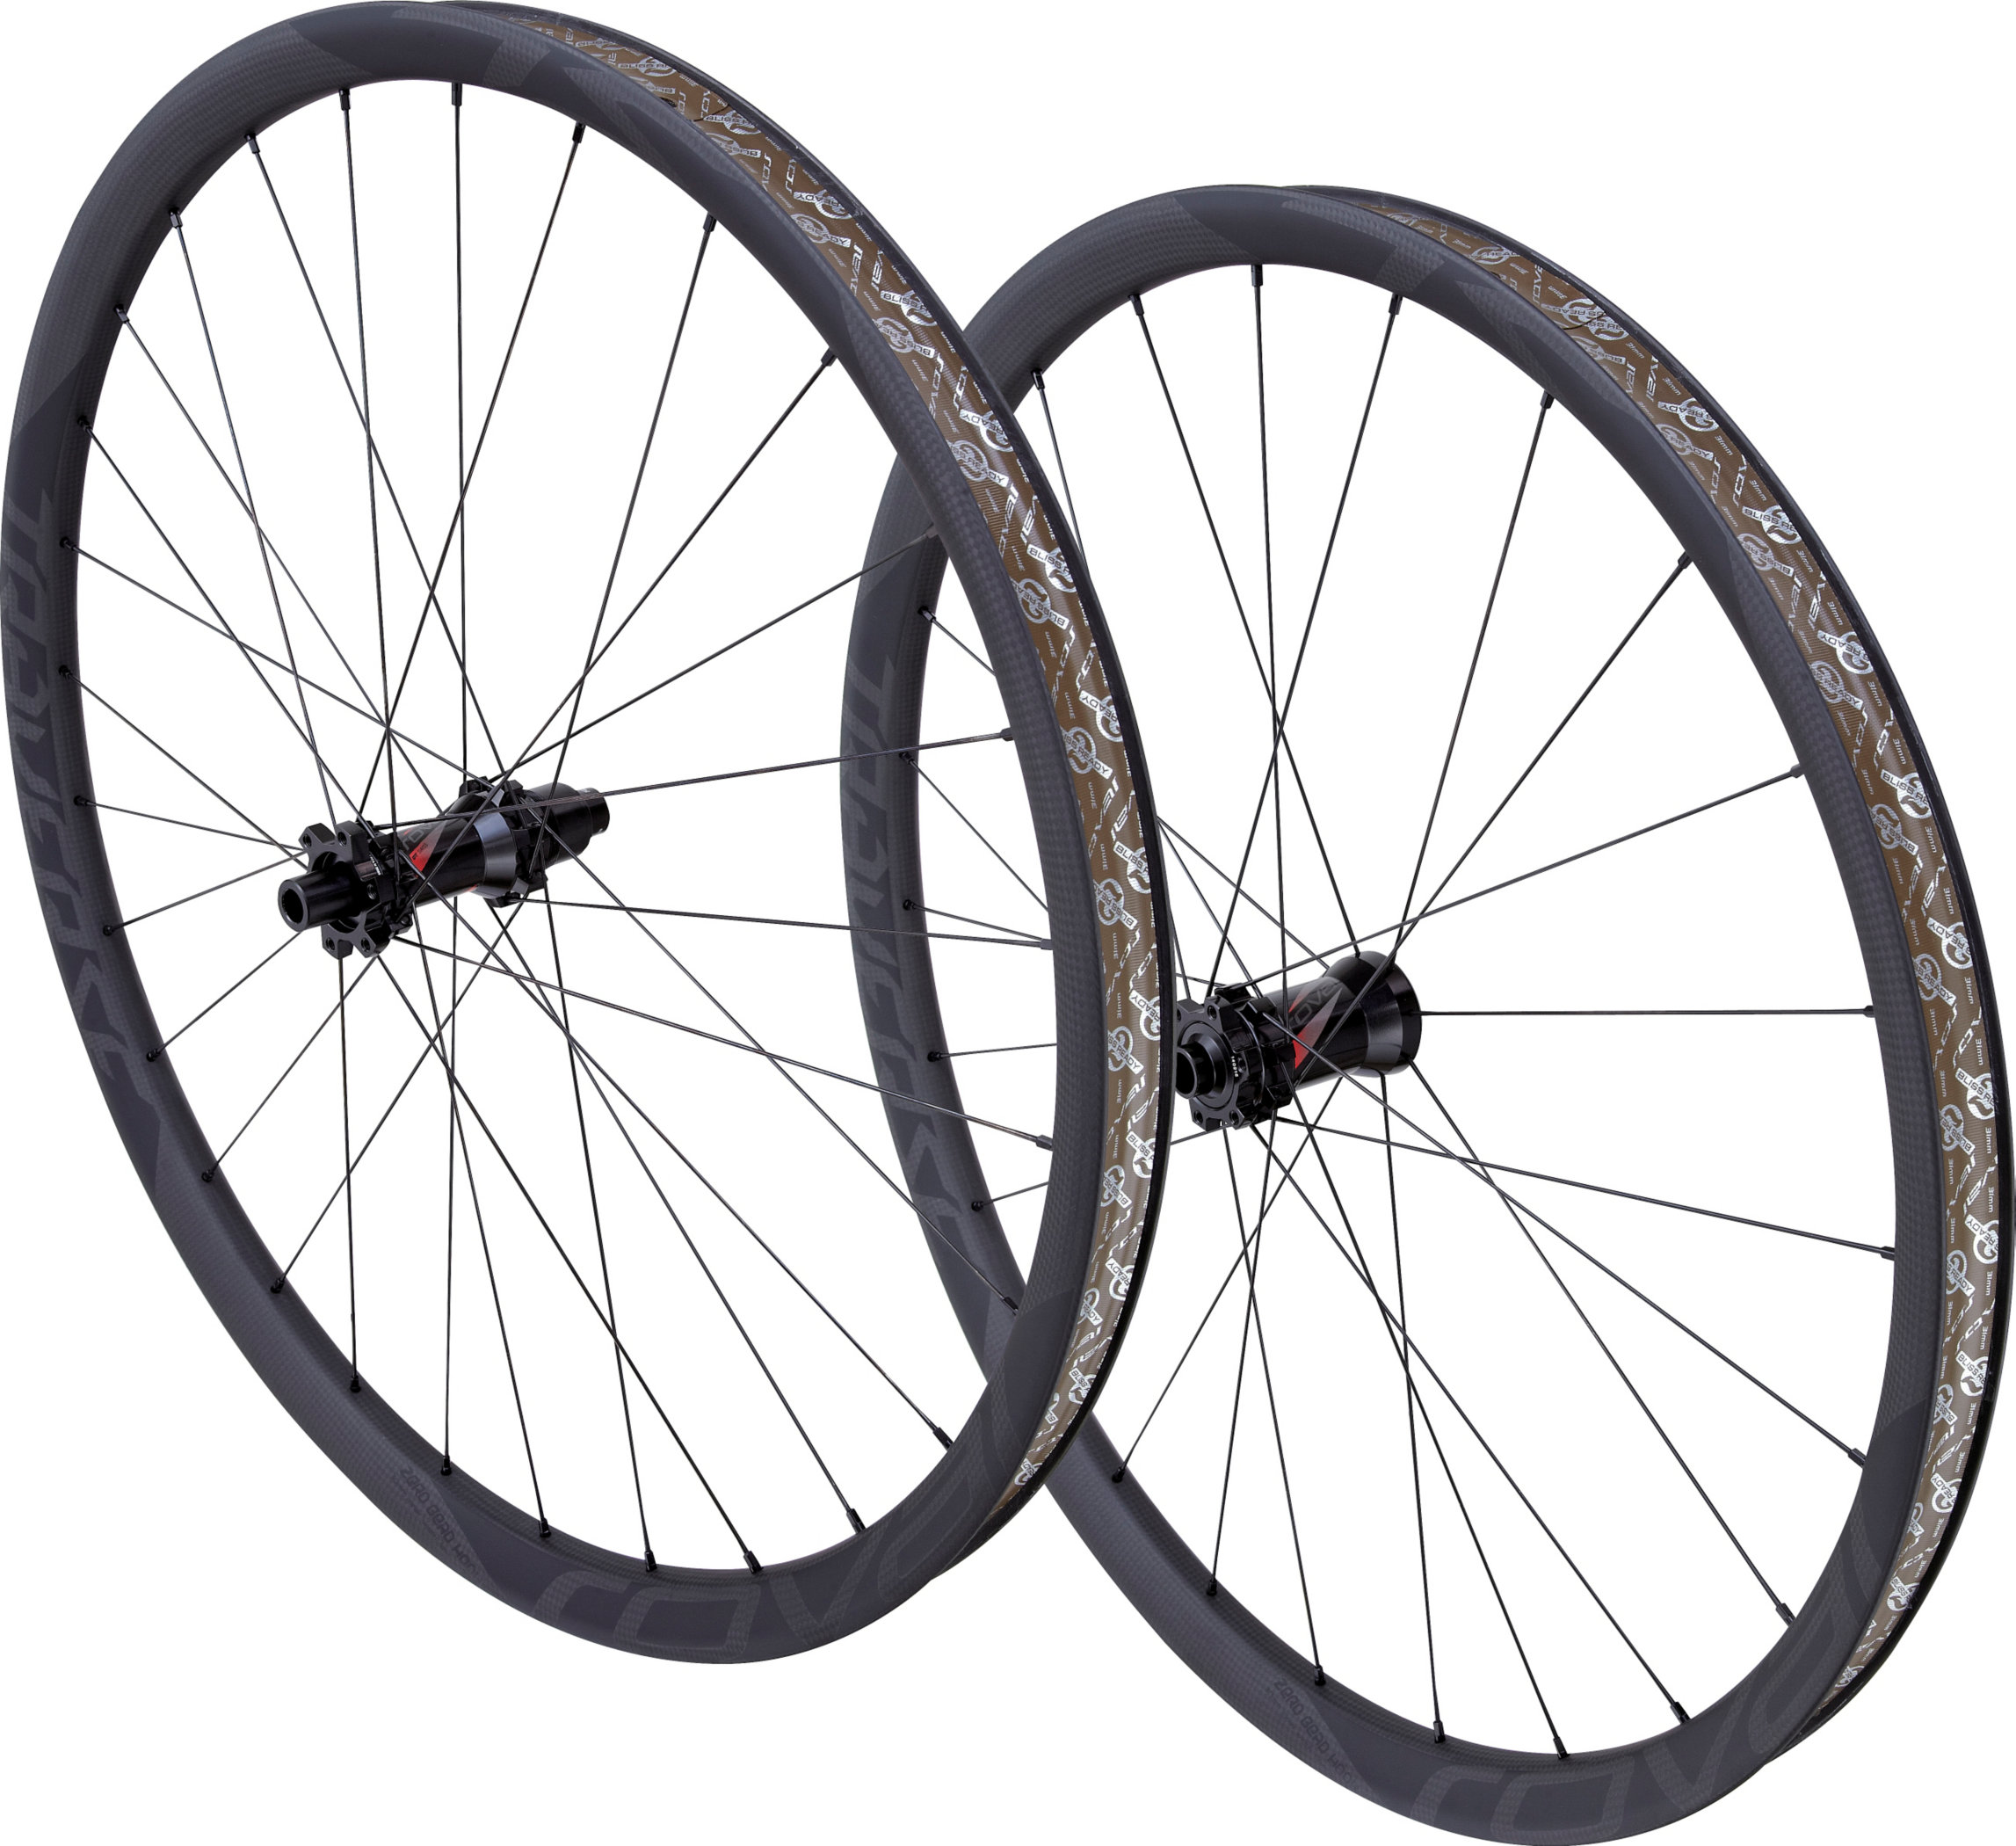 SPECIALIZED TRAVERSE SL 650B WHEELSET CARB/BLK - Bike Zone